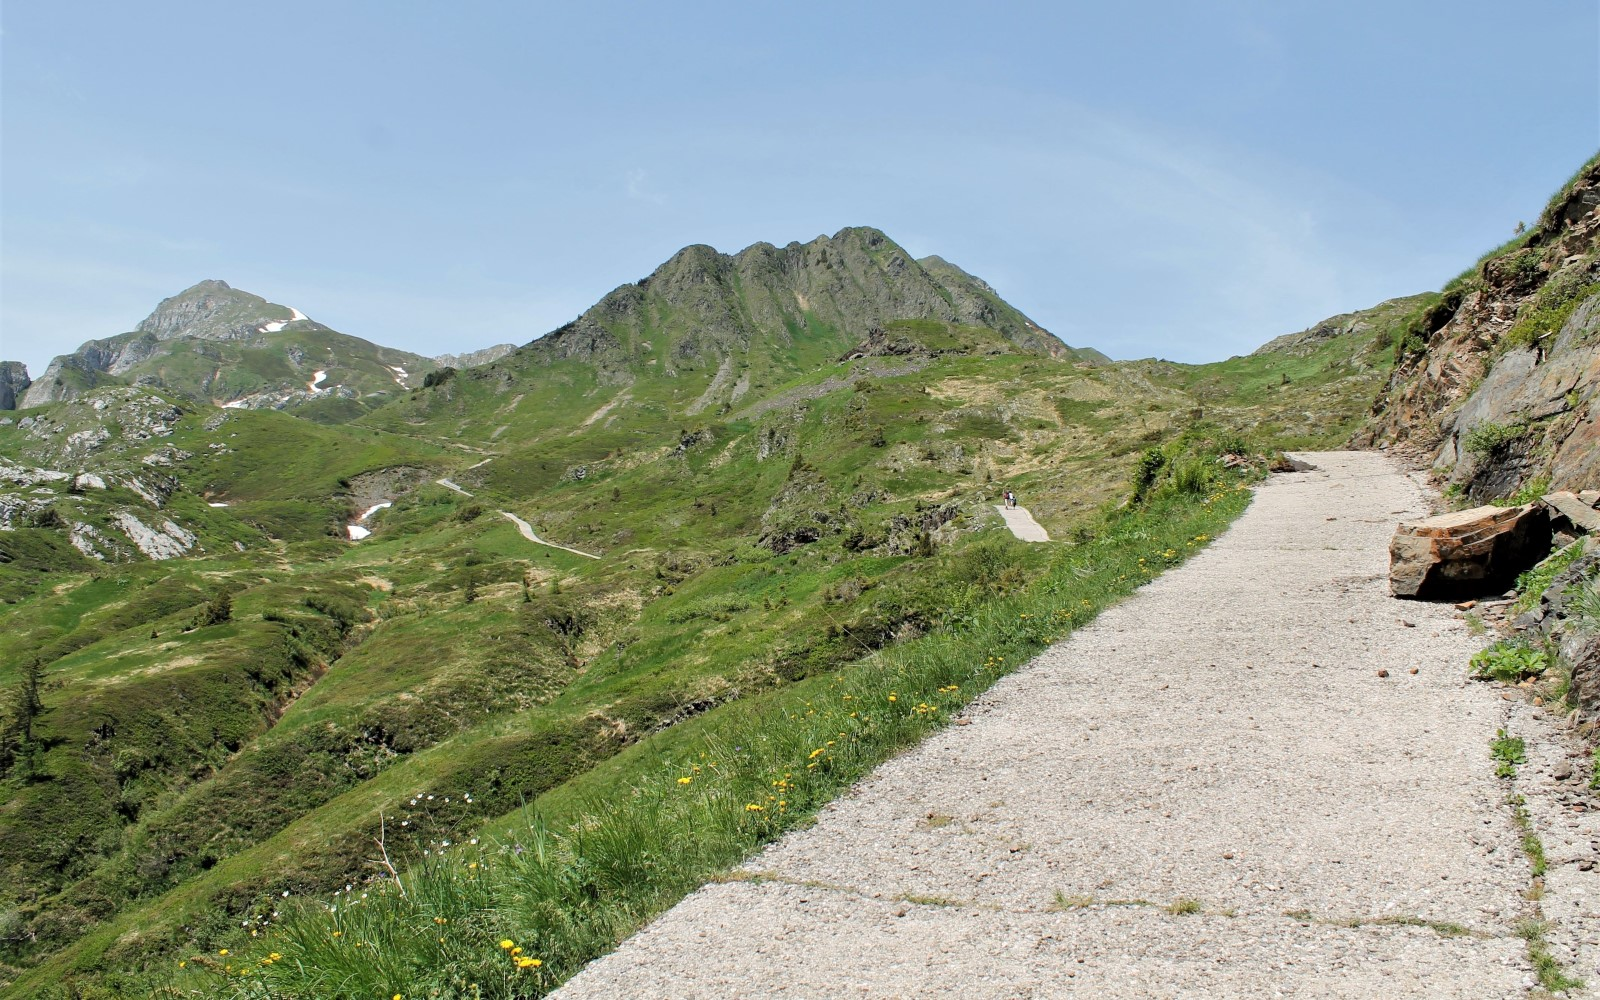 Hiking trail CAI 402 in the Carnic Alps